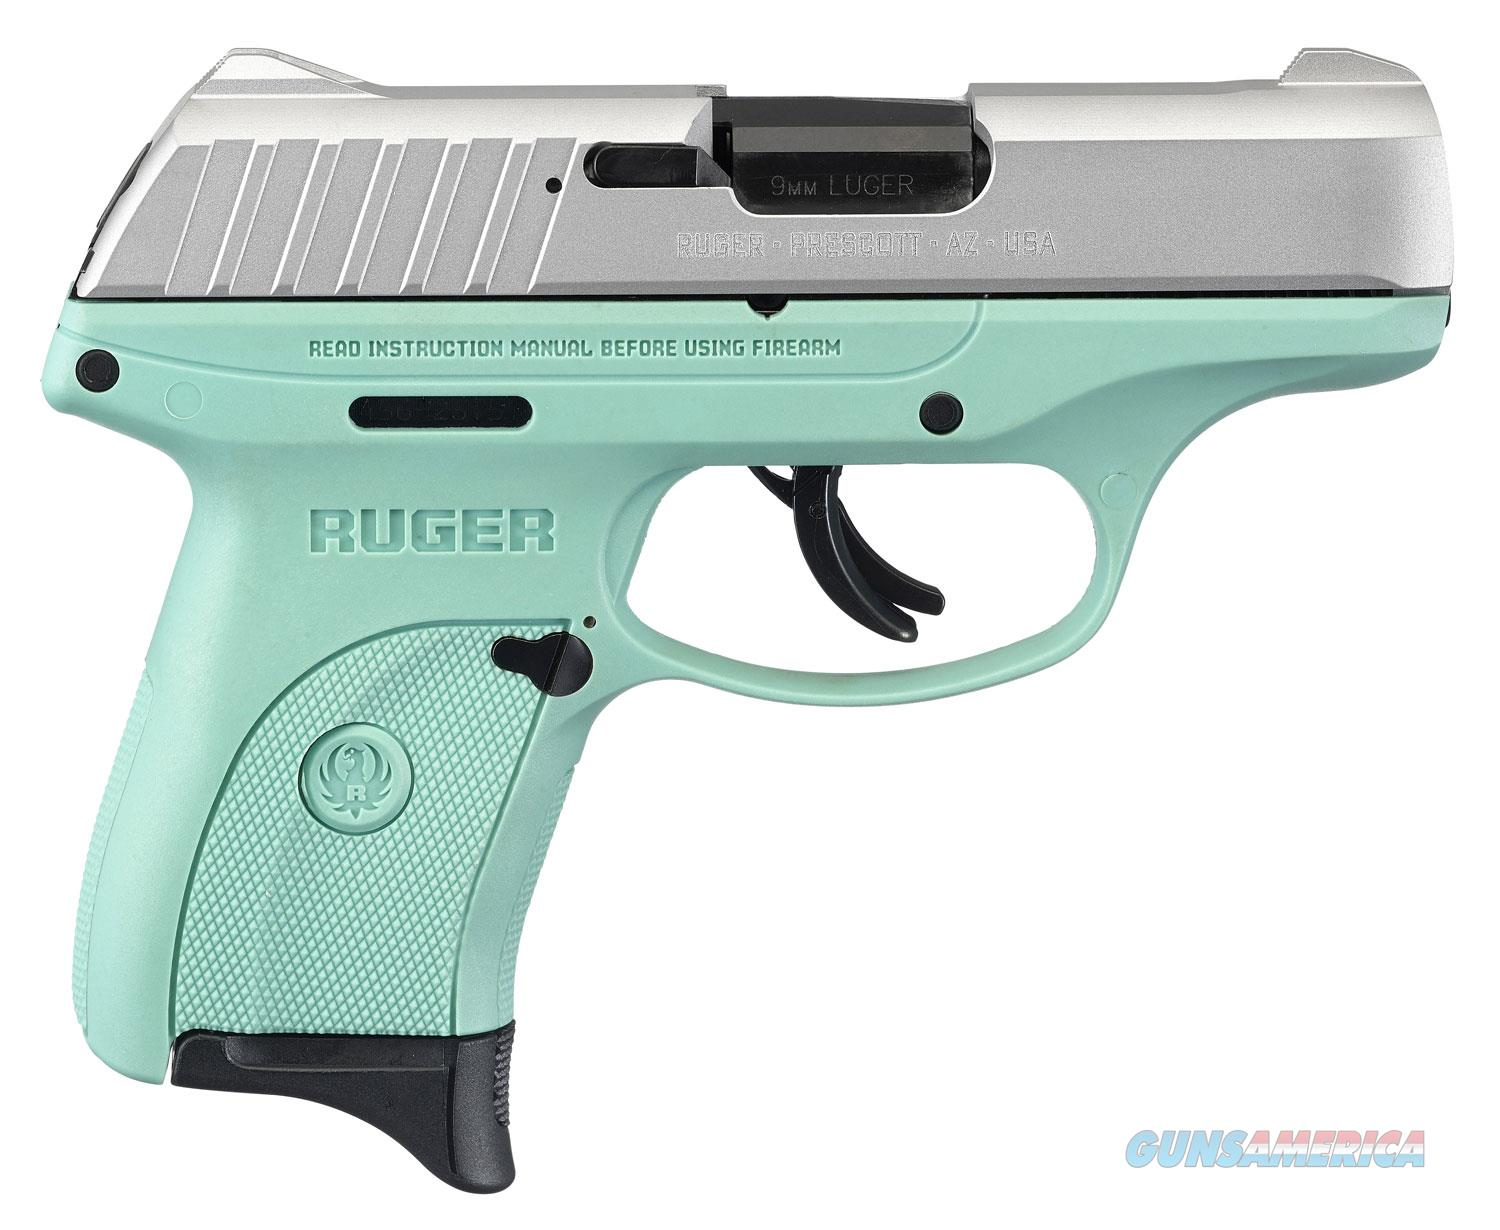 "Ruger EC9S 13200 9mm 3"" 7+1 Turquoise Blue/Silver Thumb Safety ""NO CREDIT CARD FEE"" *New in Box*  Guns > Pistols > Ruger Semi-Auto Pistols > EC9"